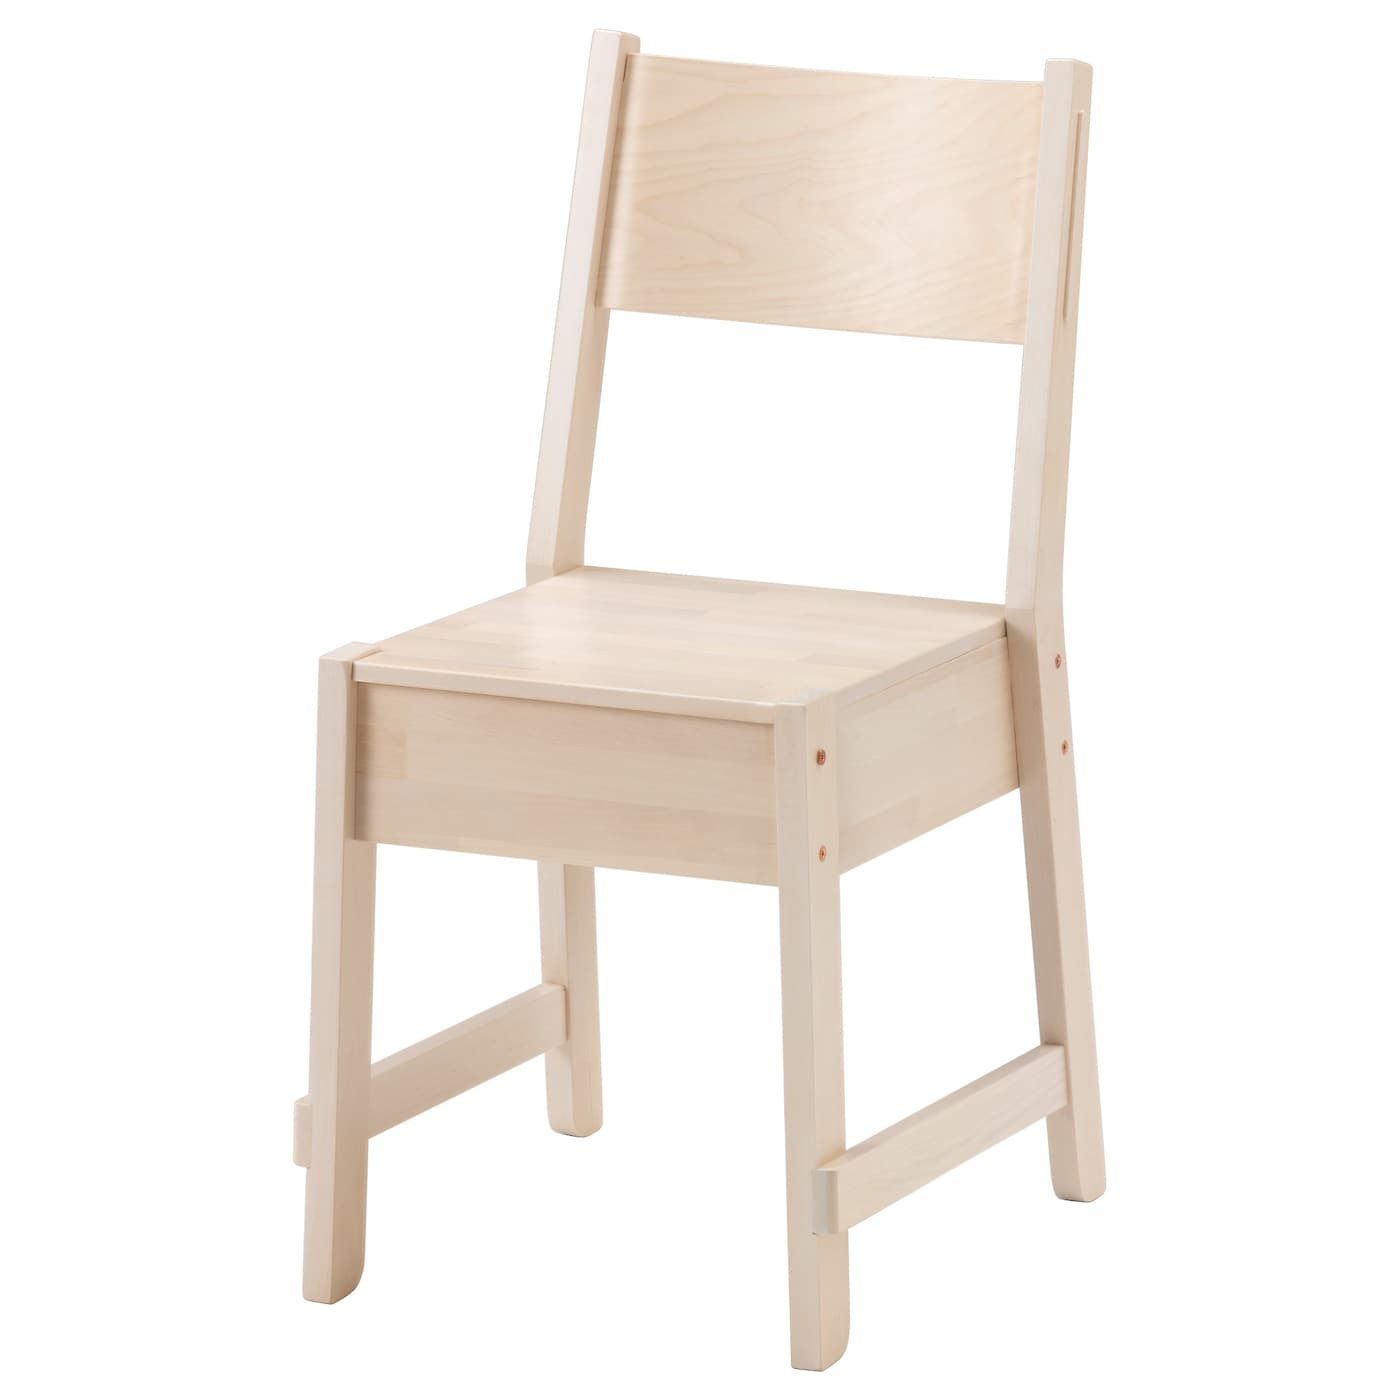 IKEA NORRÅKER chair Durable and hard-wearing; meets the requirements on furniture for public use.